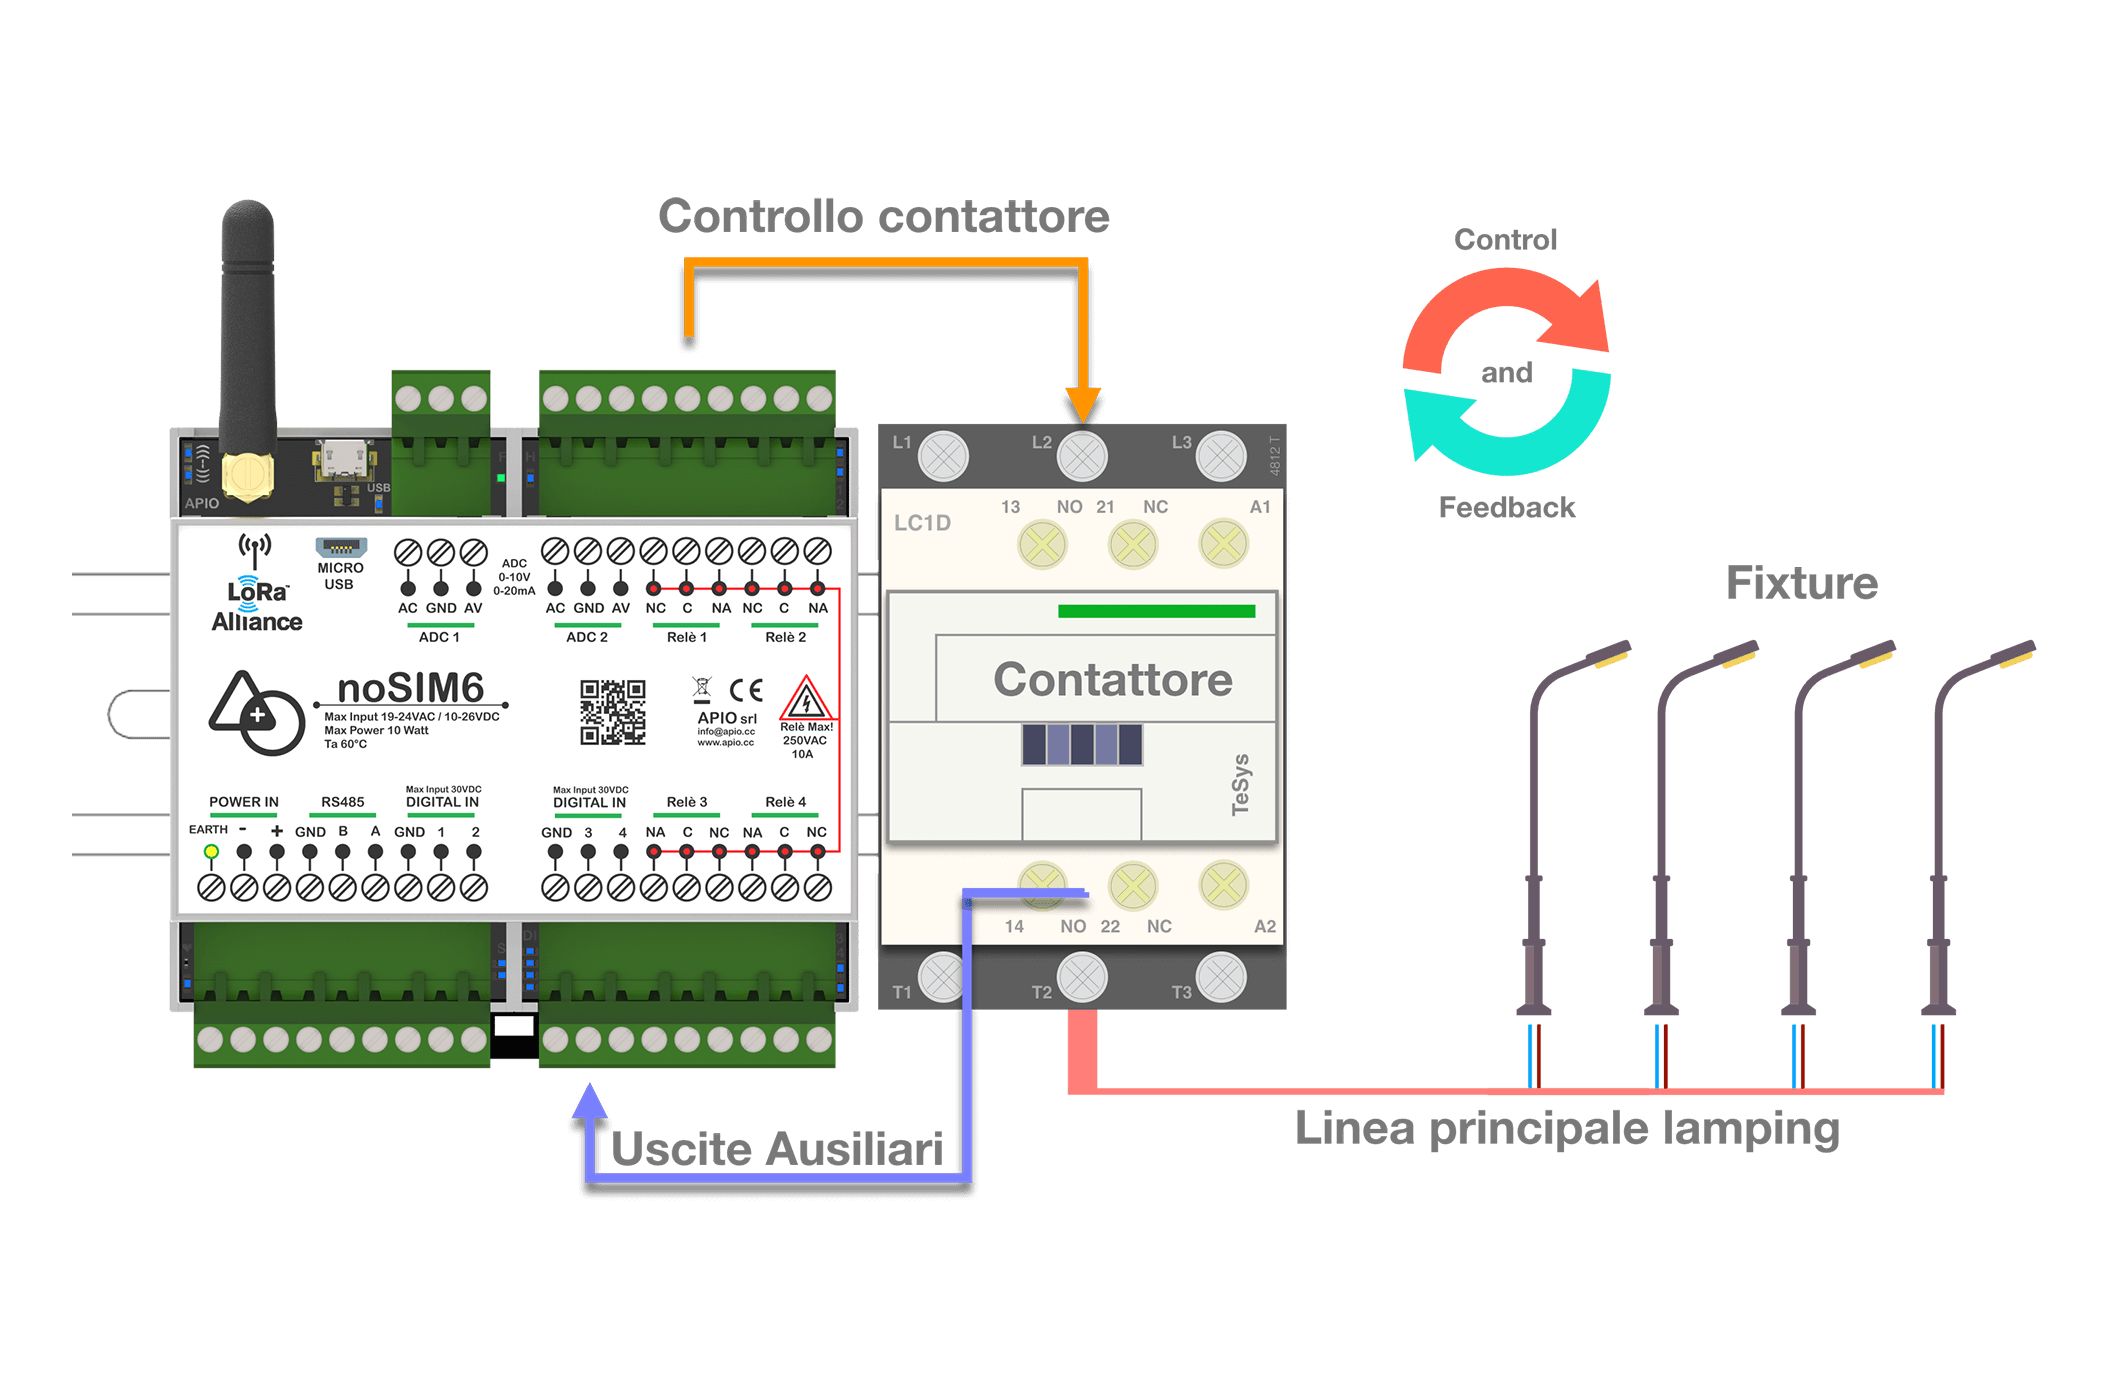 Real Smart Lighting, free from mobile subscriptions - Apio